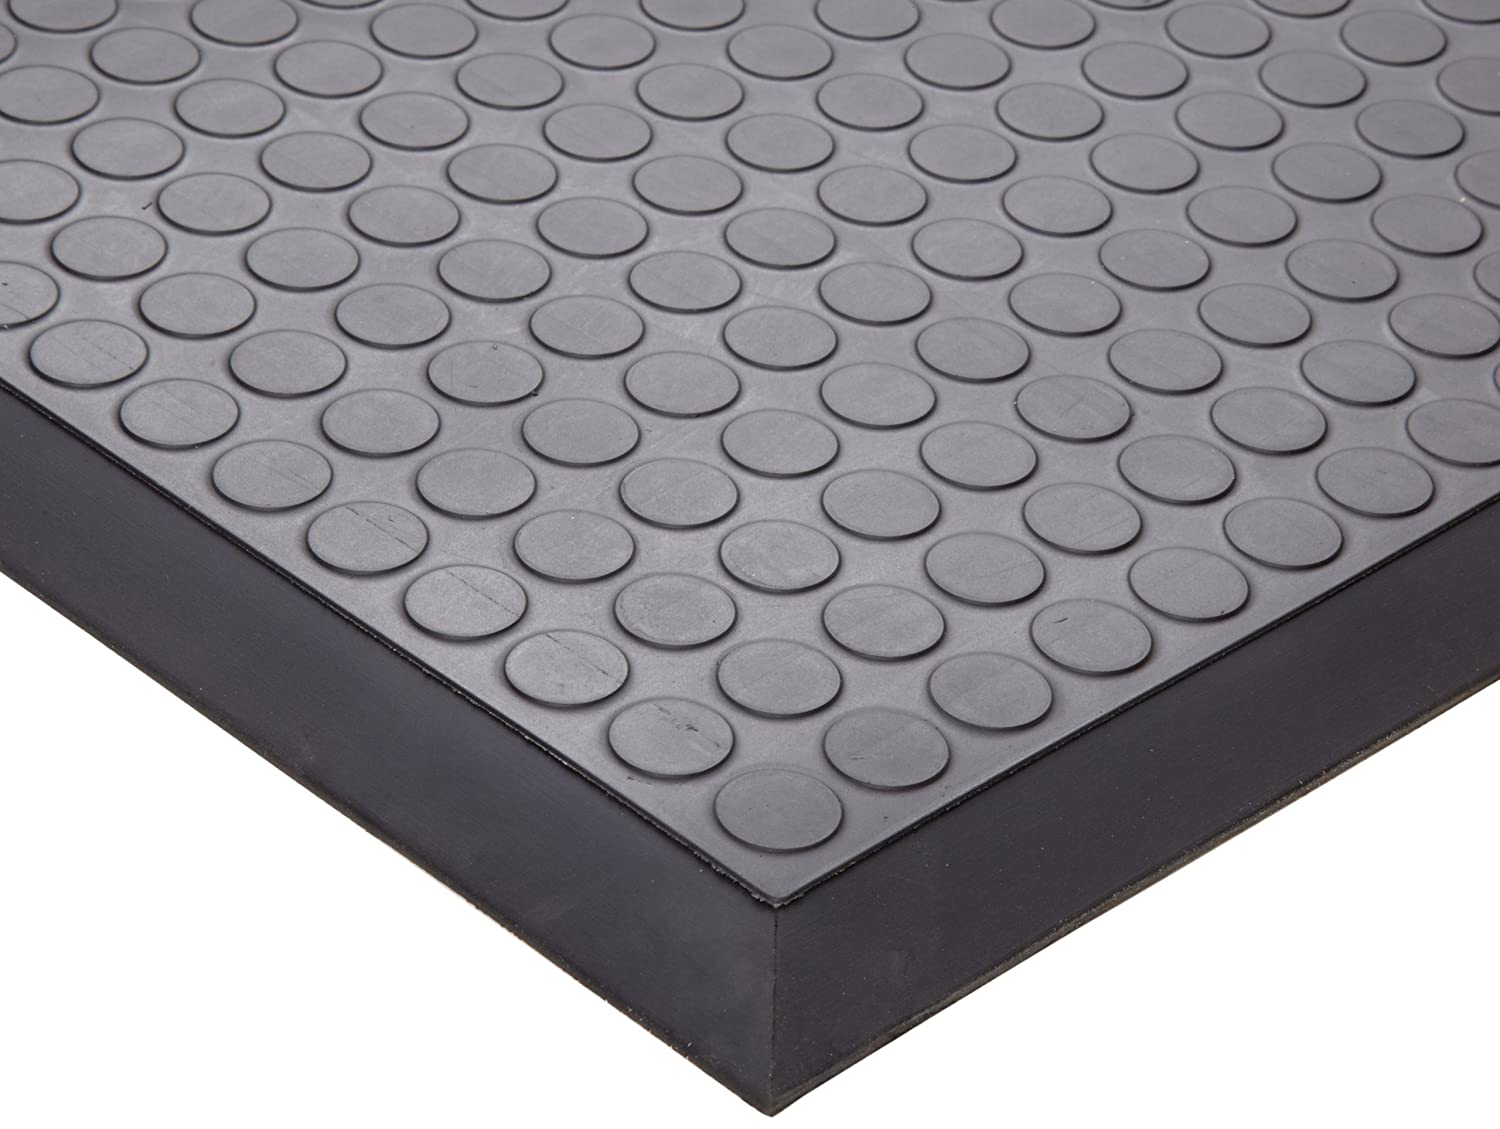 Anthracite 2 Width x 13 Length x 0.43 Thickness for Non-Critical Environments Ergomat Polyurethane Anti-Fatigue Mat